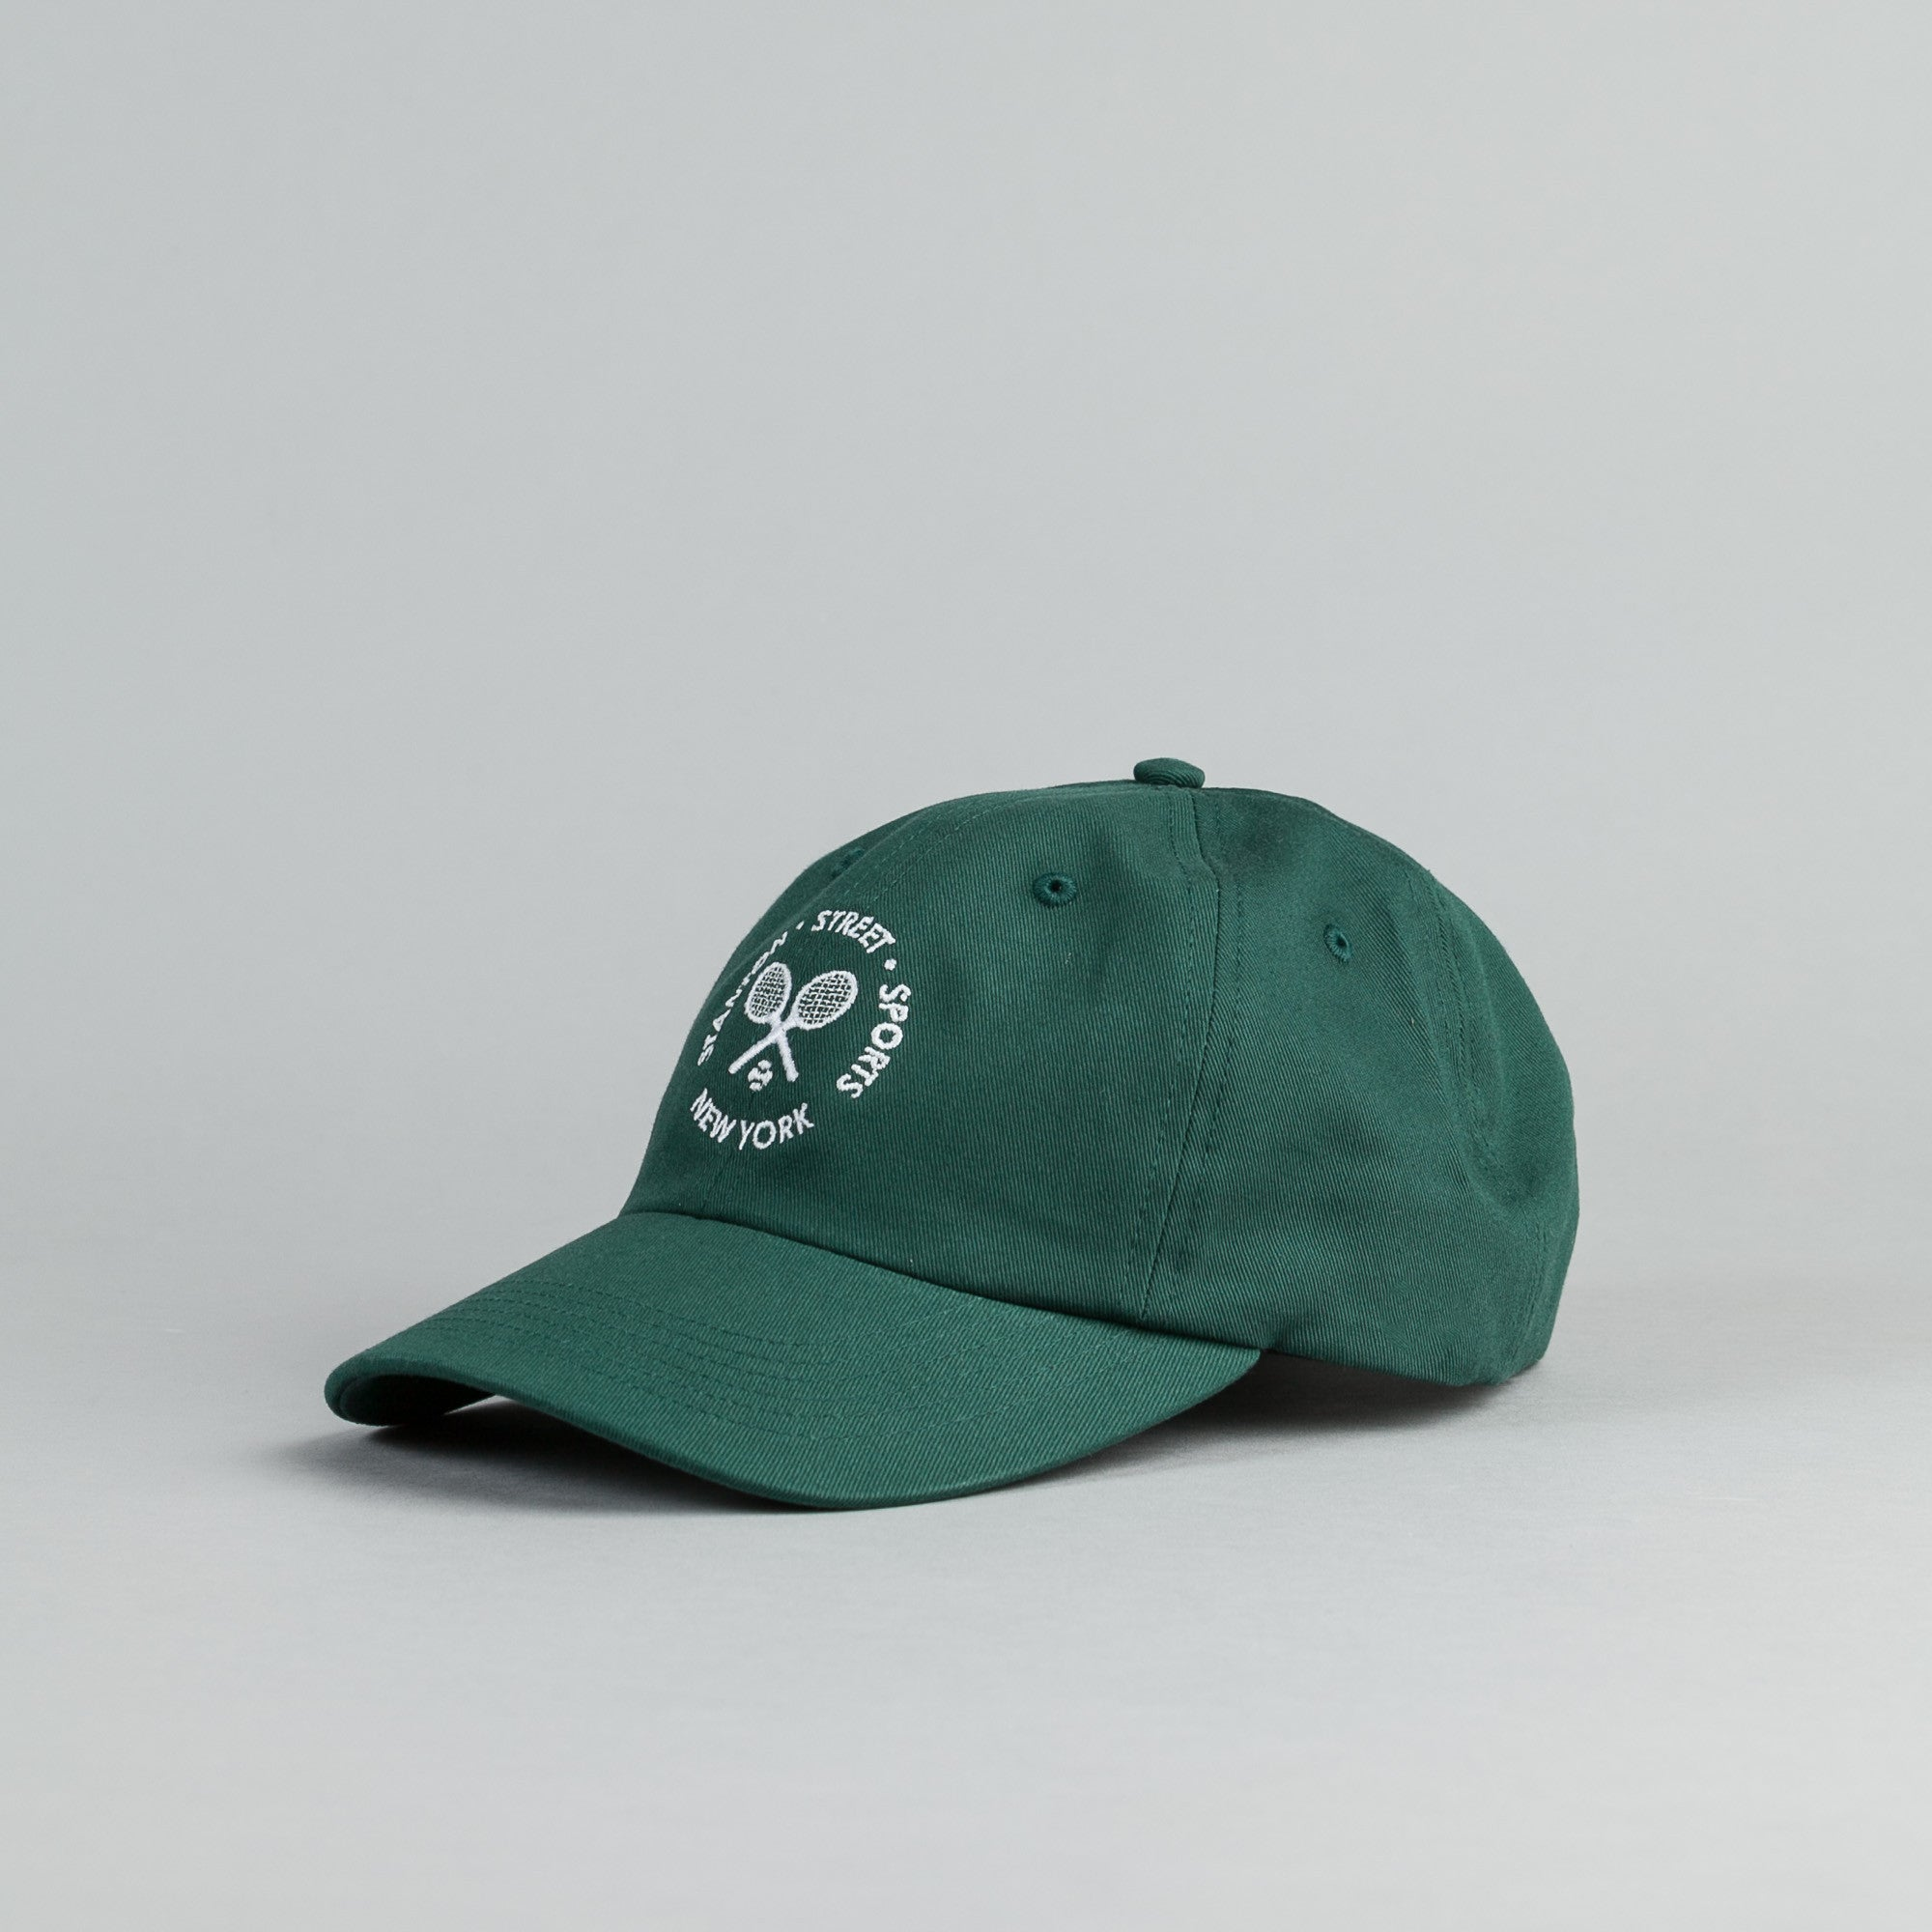 Stanton Street Sports Tennis Cap - Dark Green